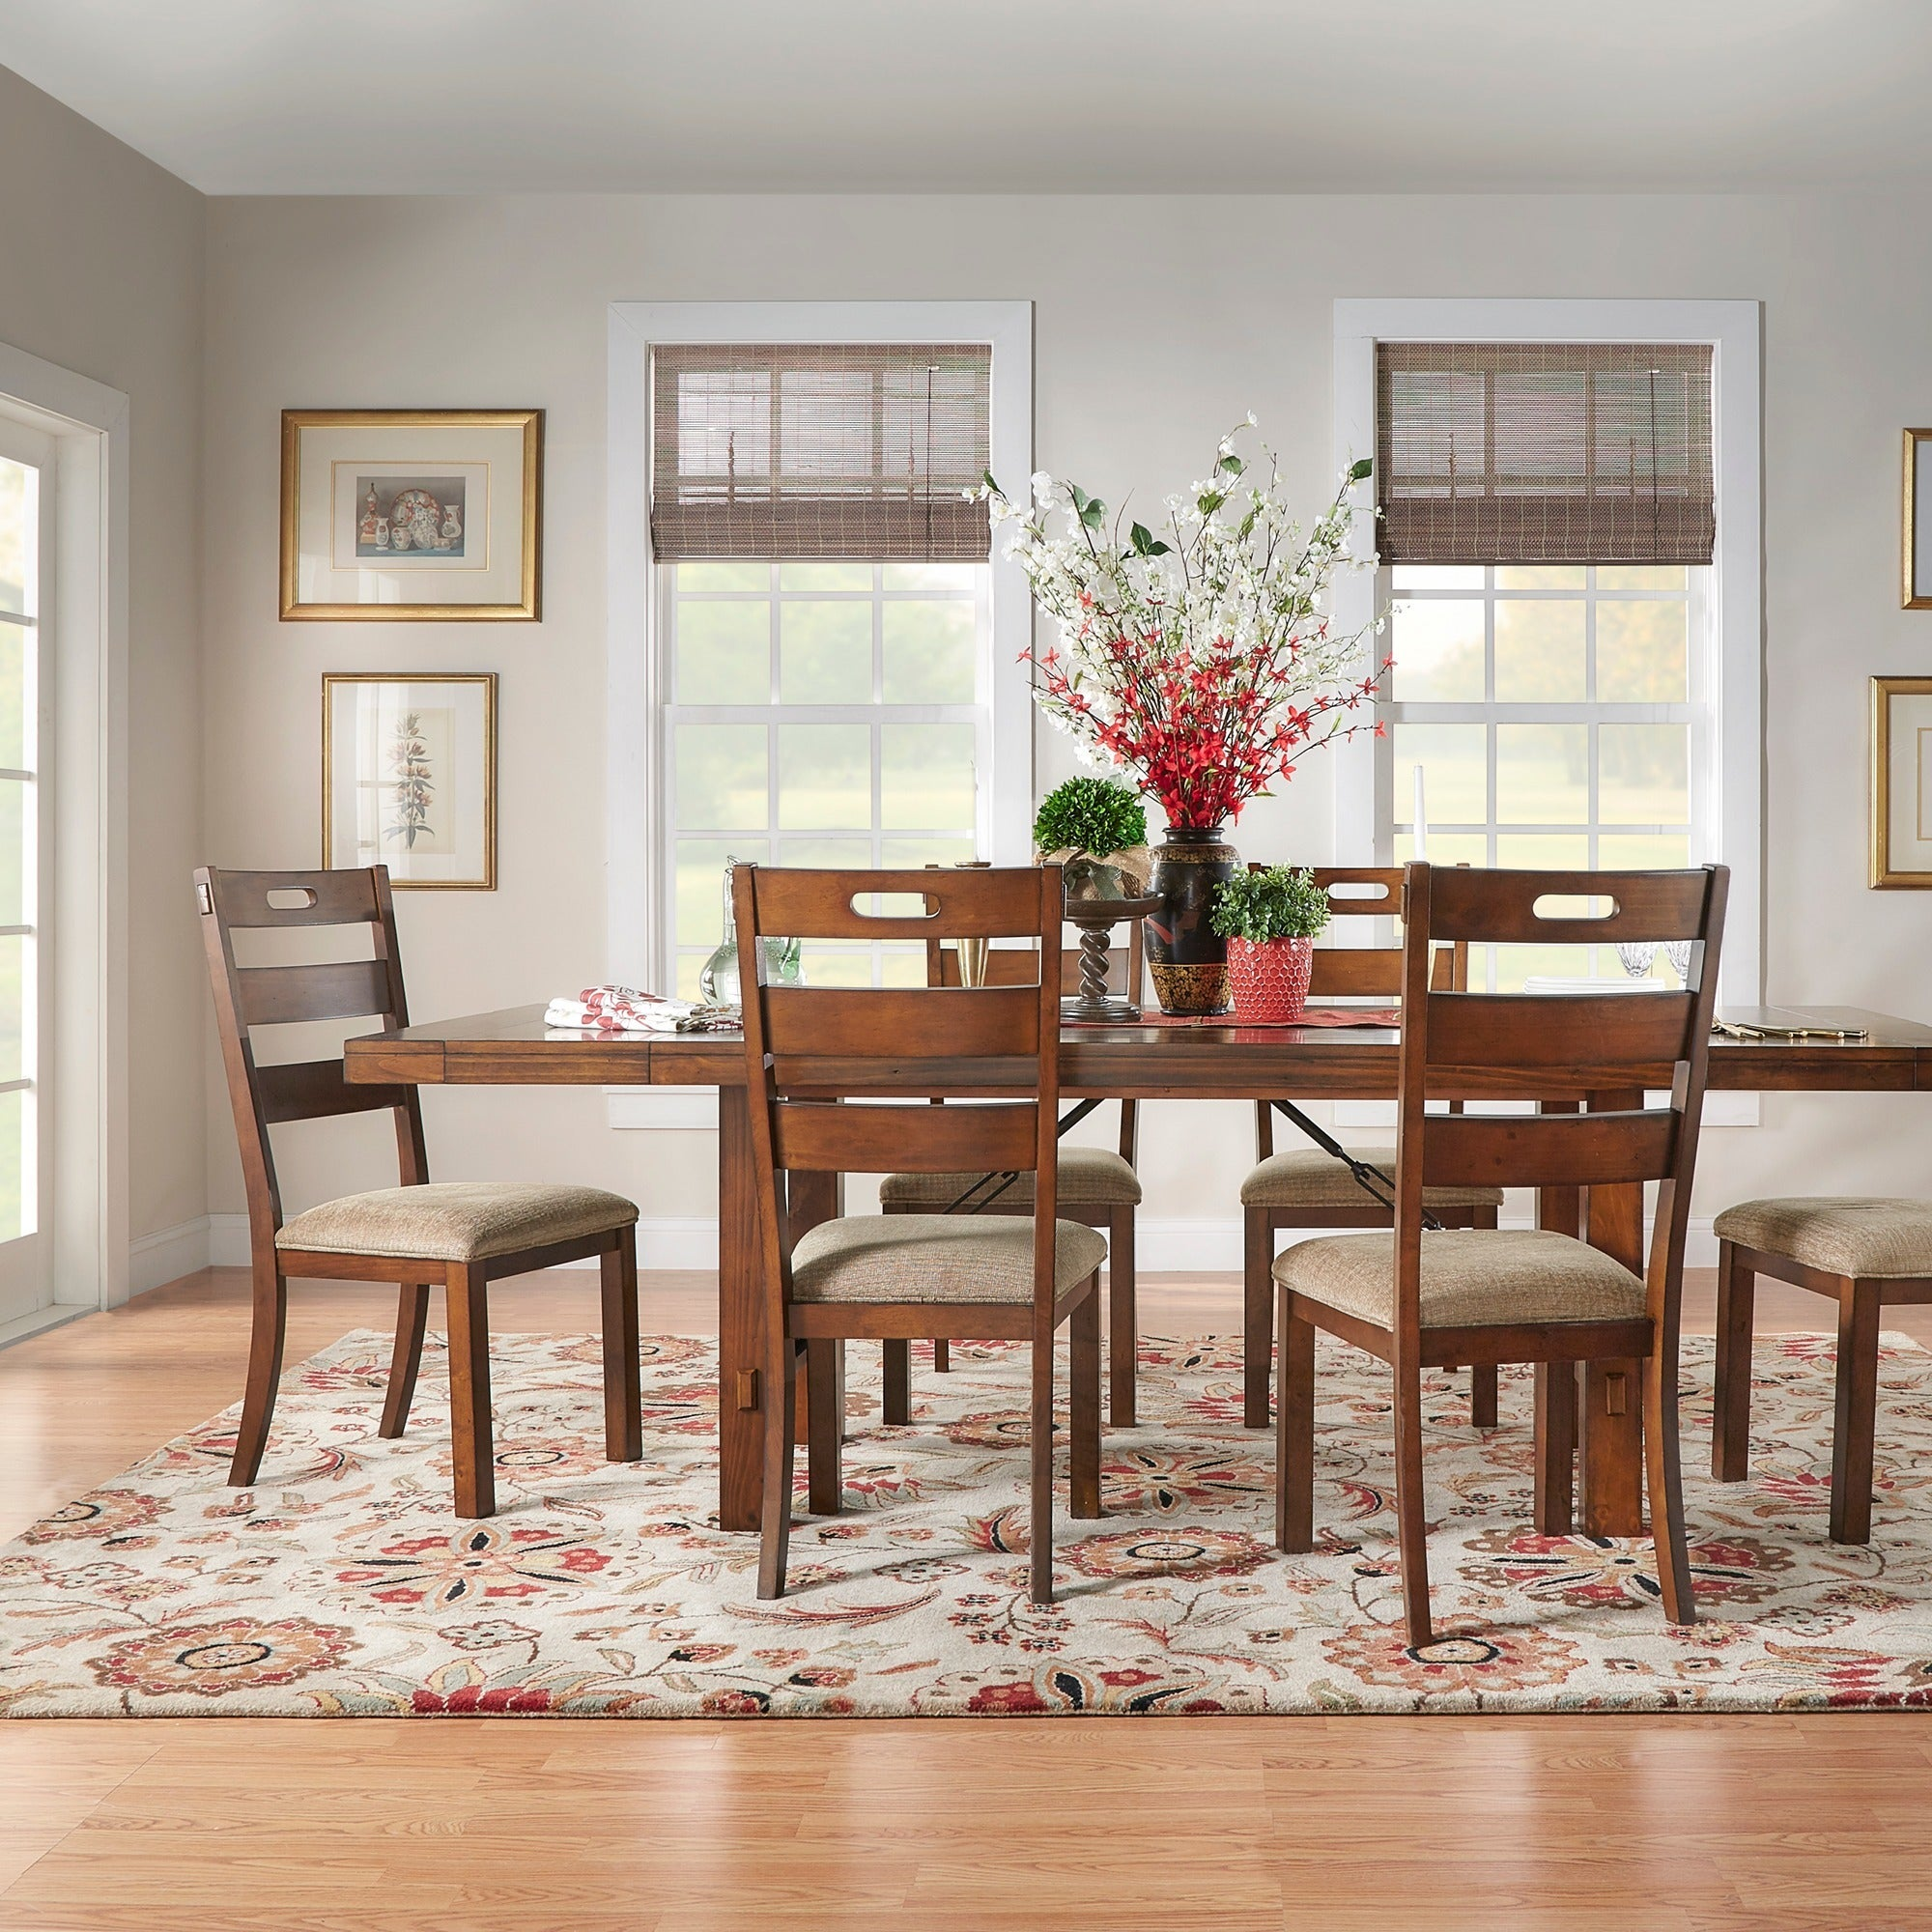 Swindon Rustic Oak Classic Dining Chair (Set Of 2) By INSPIRE Q Classic    Free Shipping Today   Overstock.com   14294719